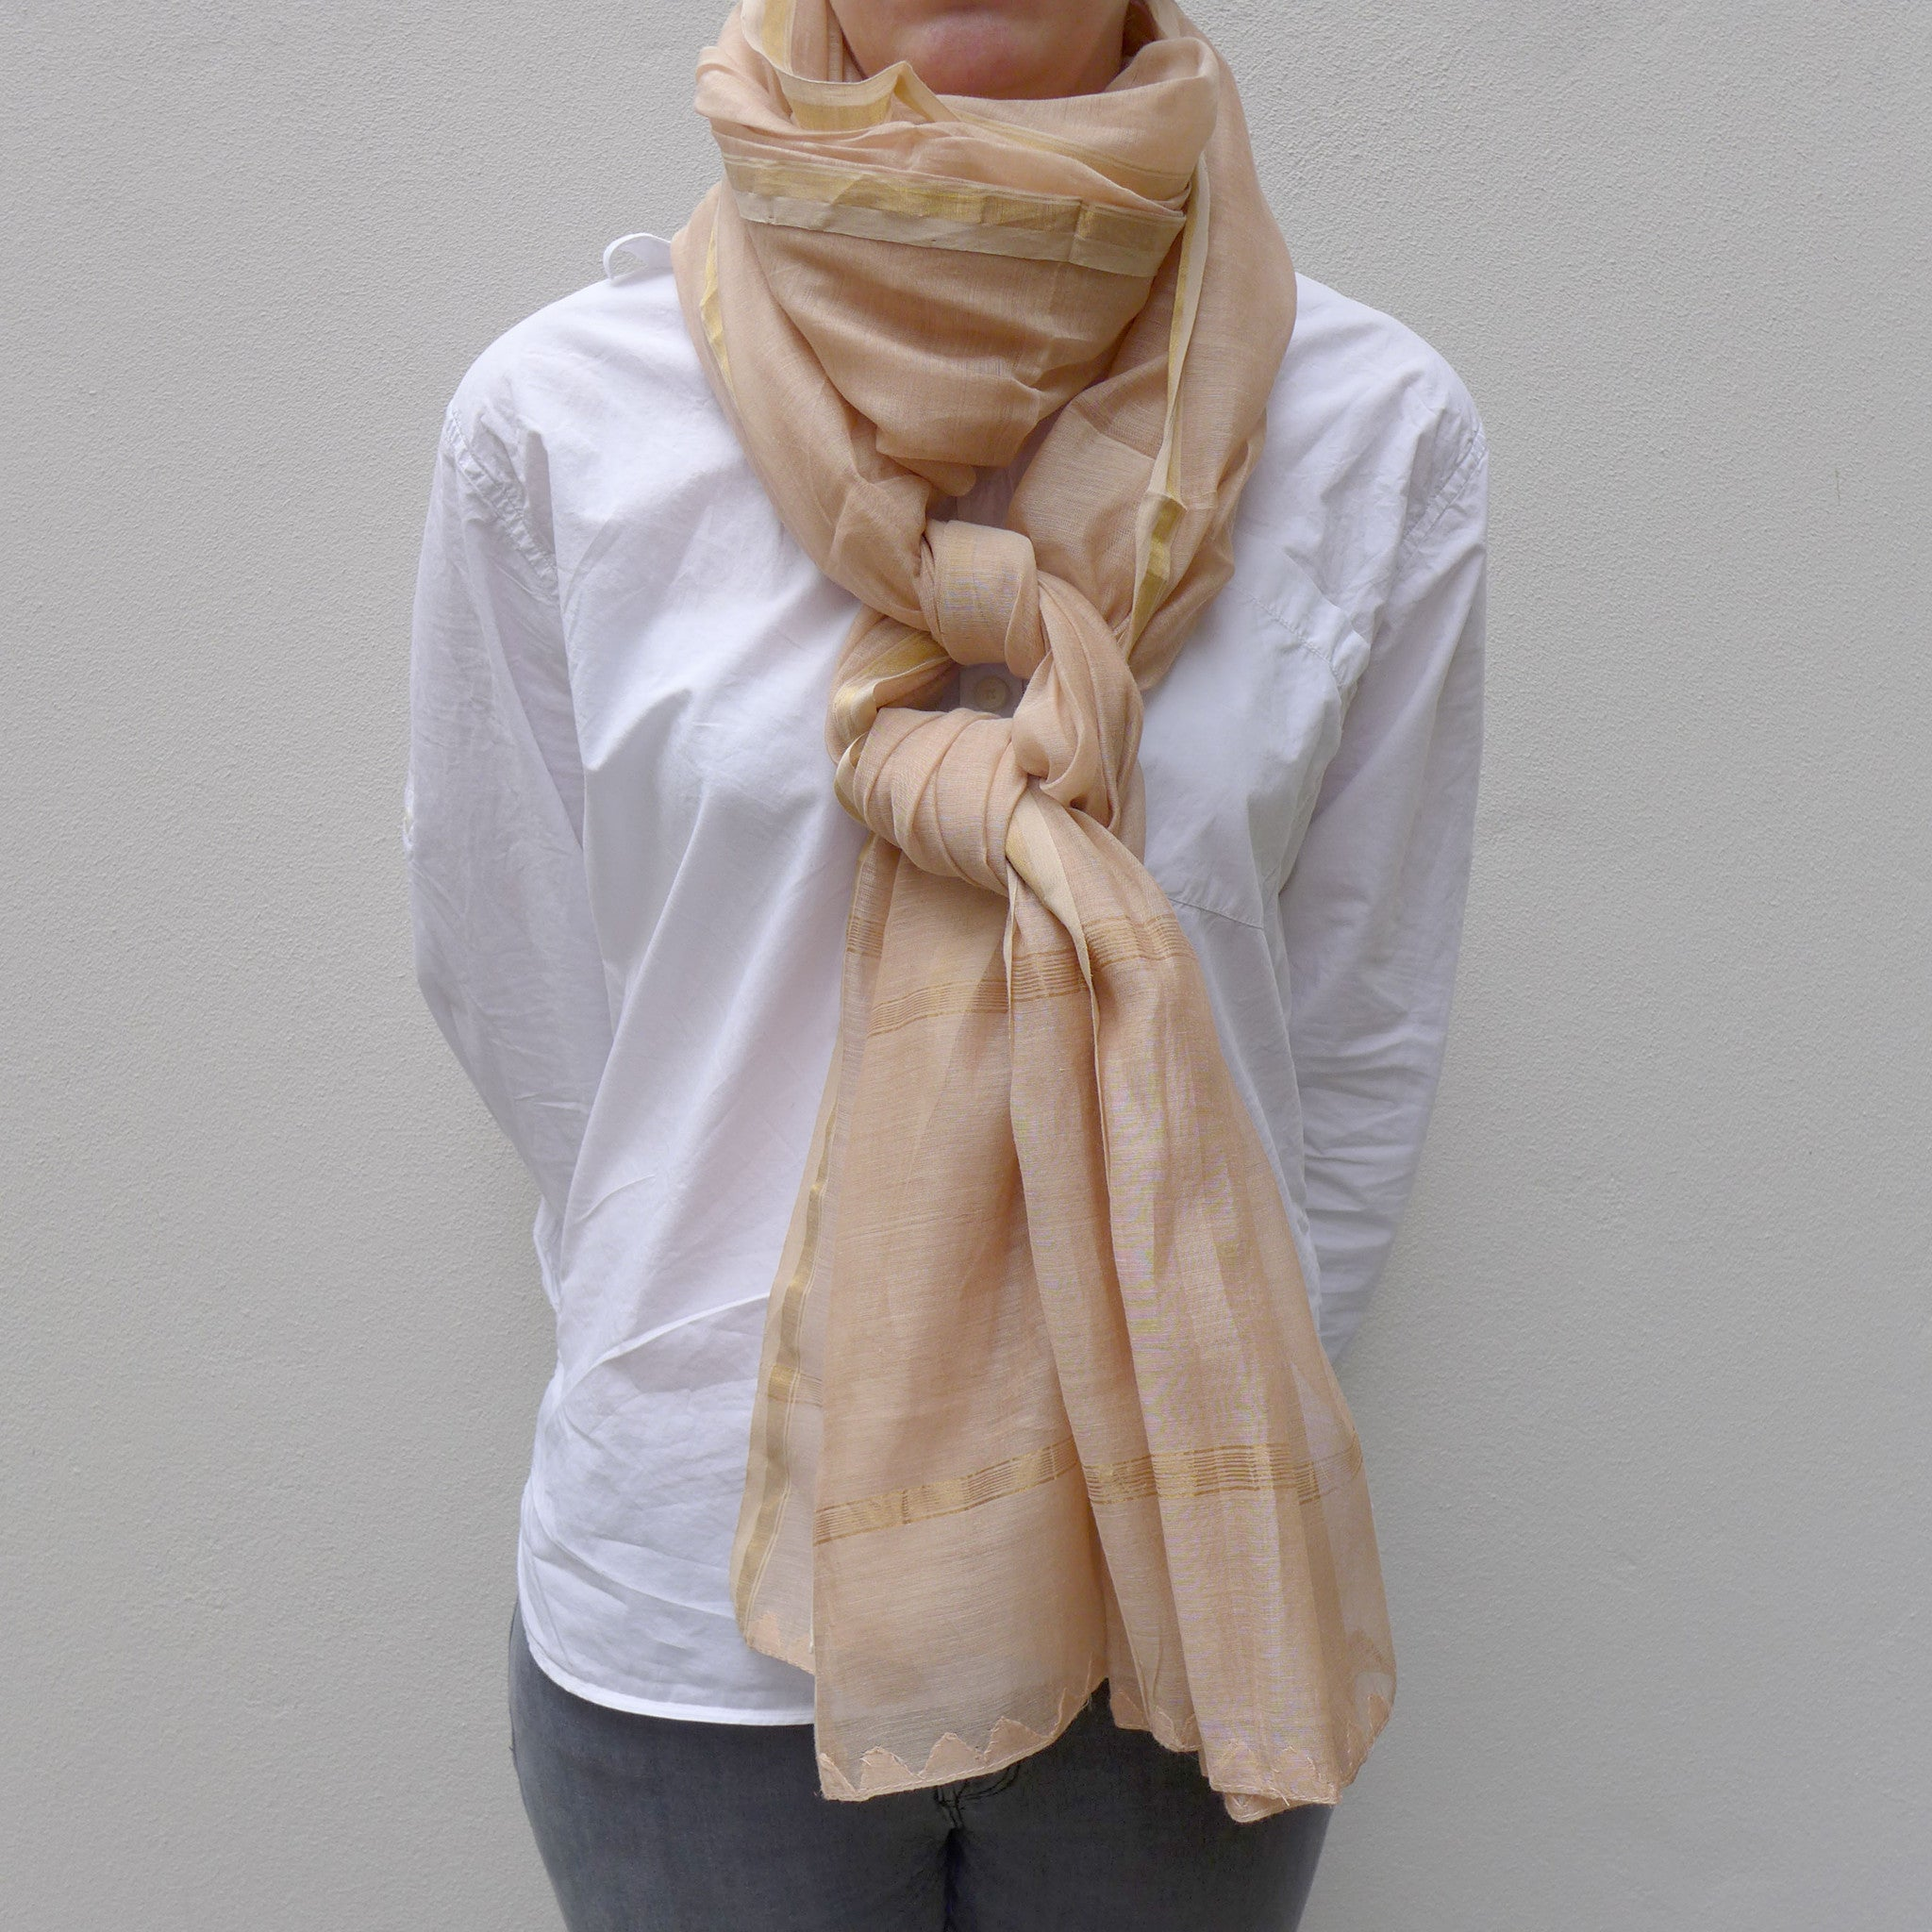 Blush pink silk shawl